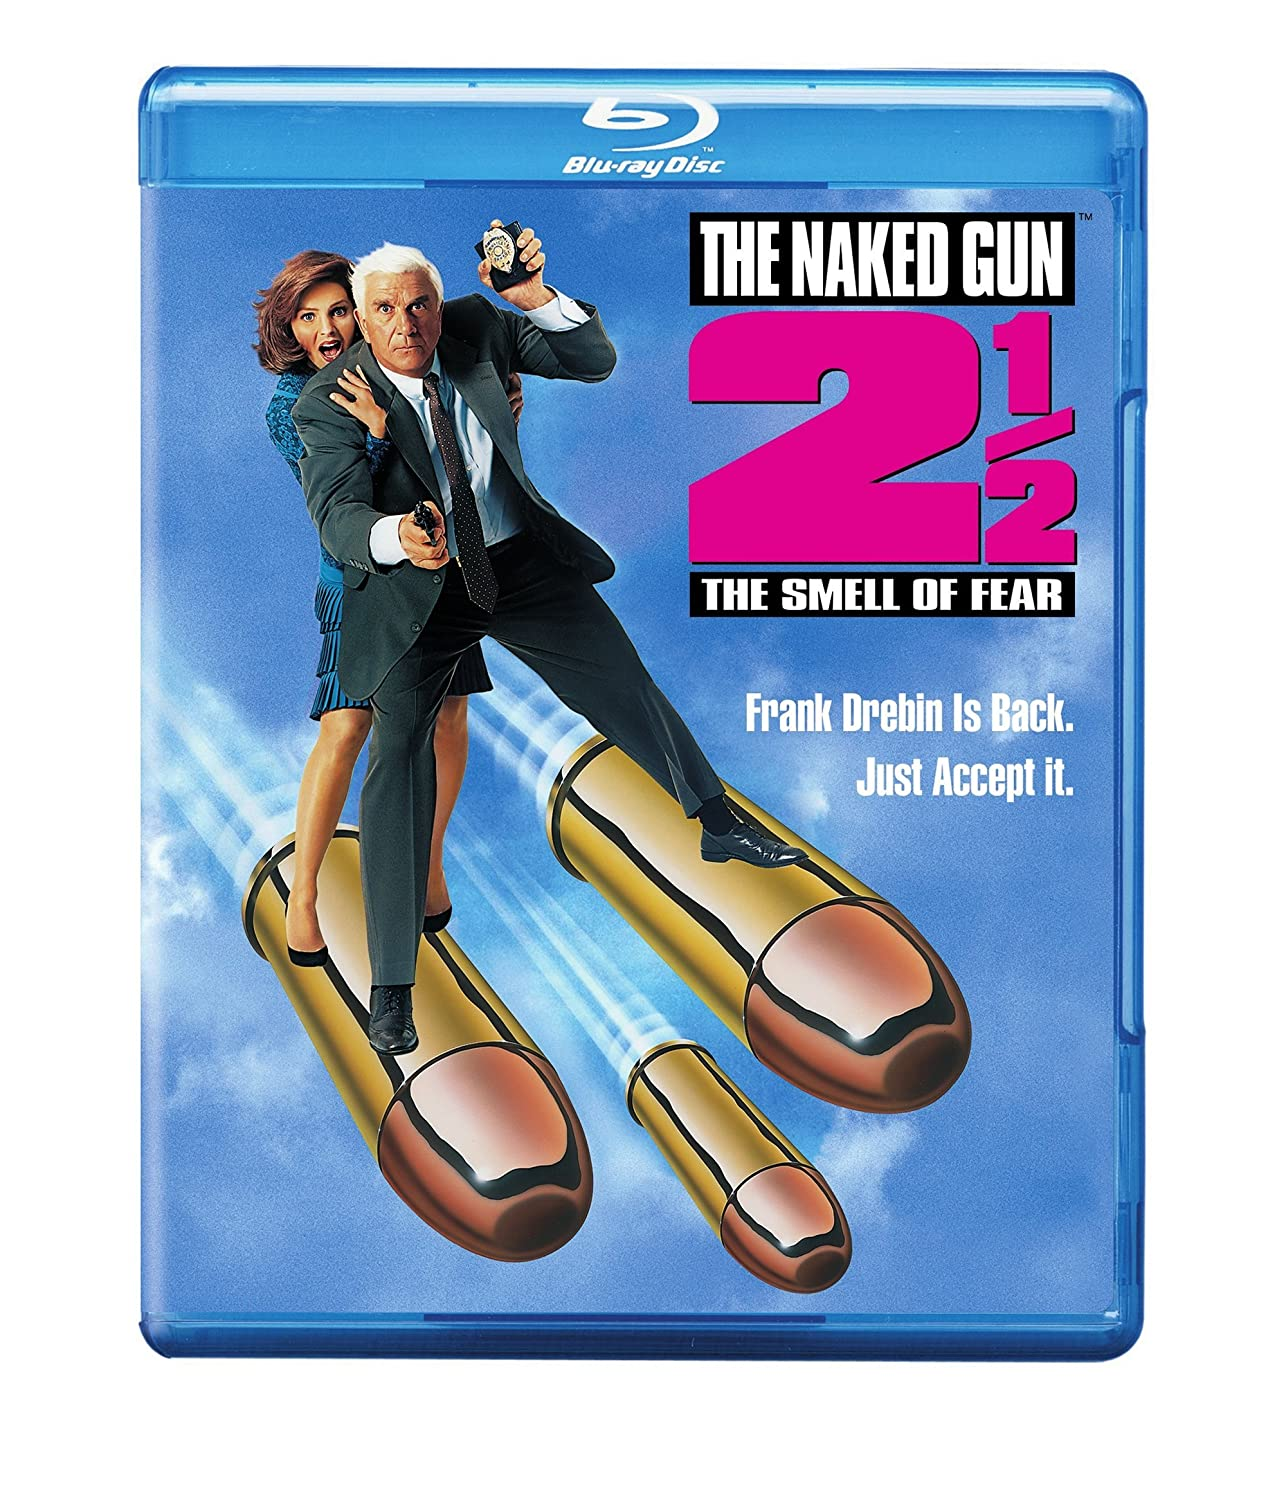 The Naked Gun 2 1/2: The Smell of Fear (VHS, 1991